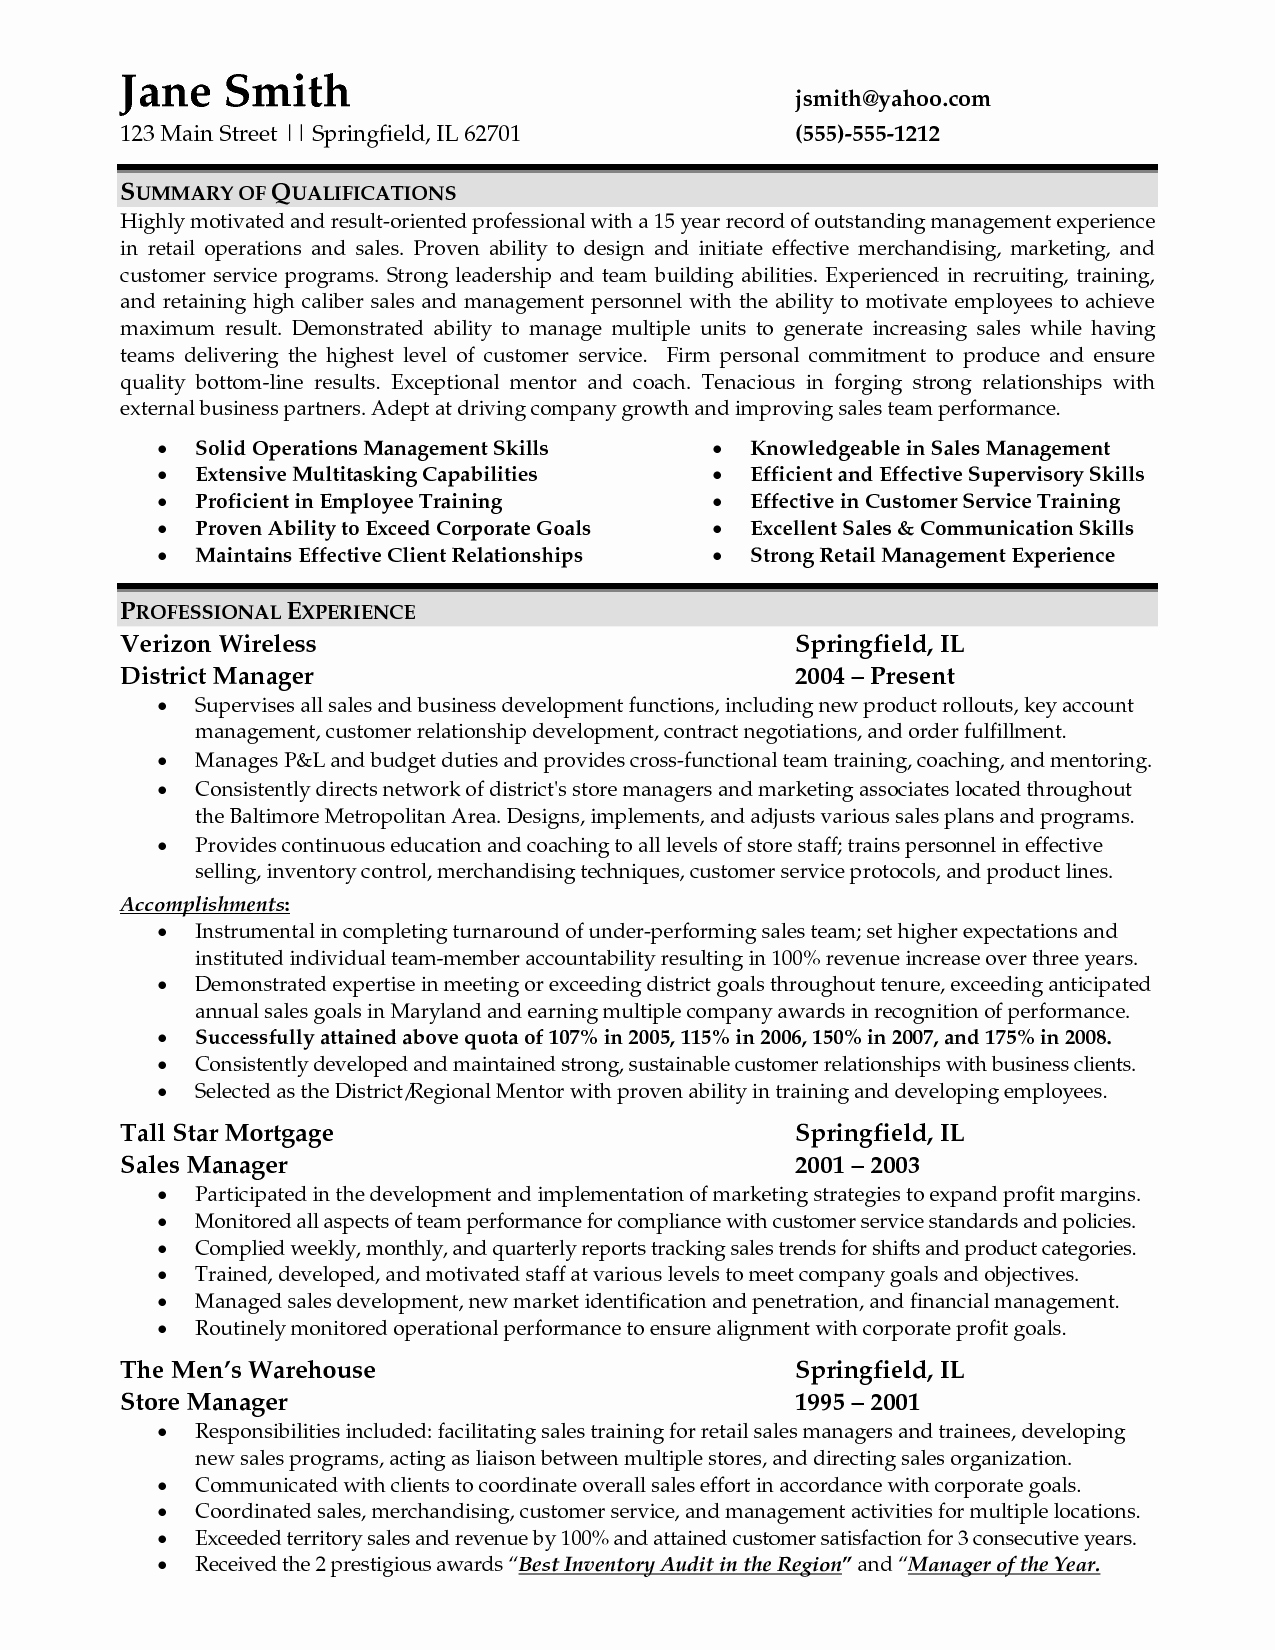 Sample Resume for Retail Management Job